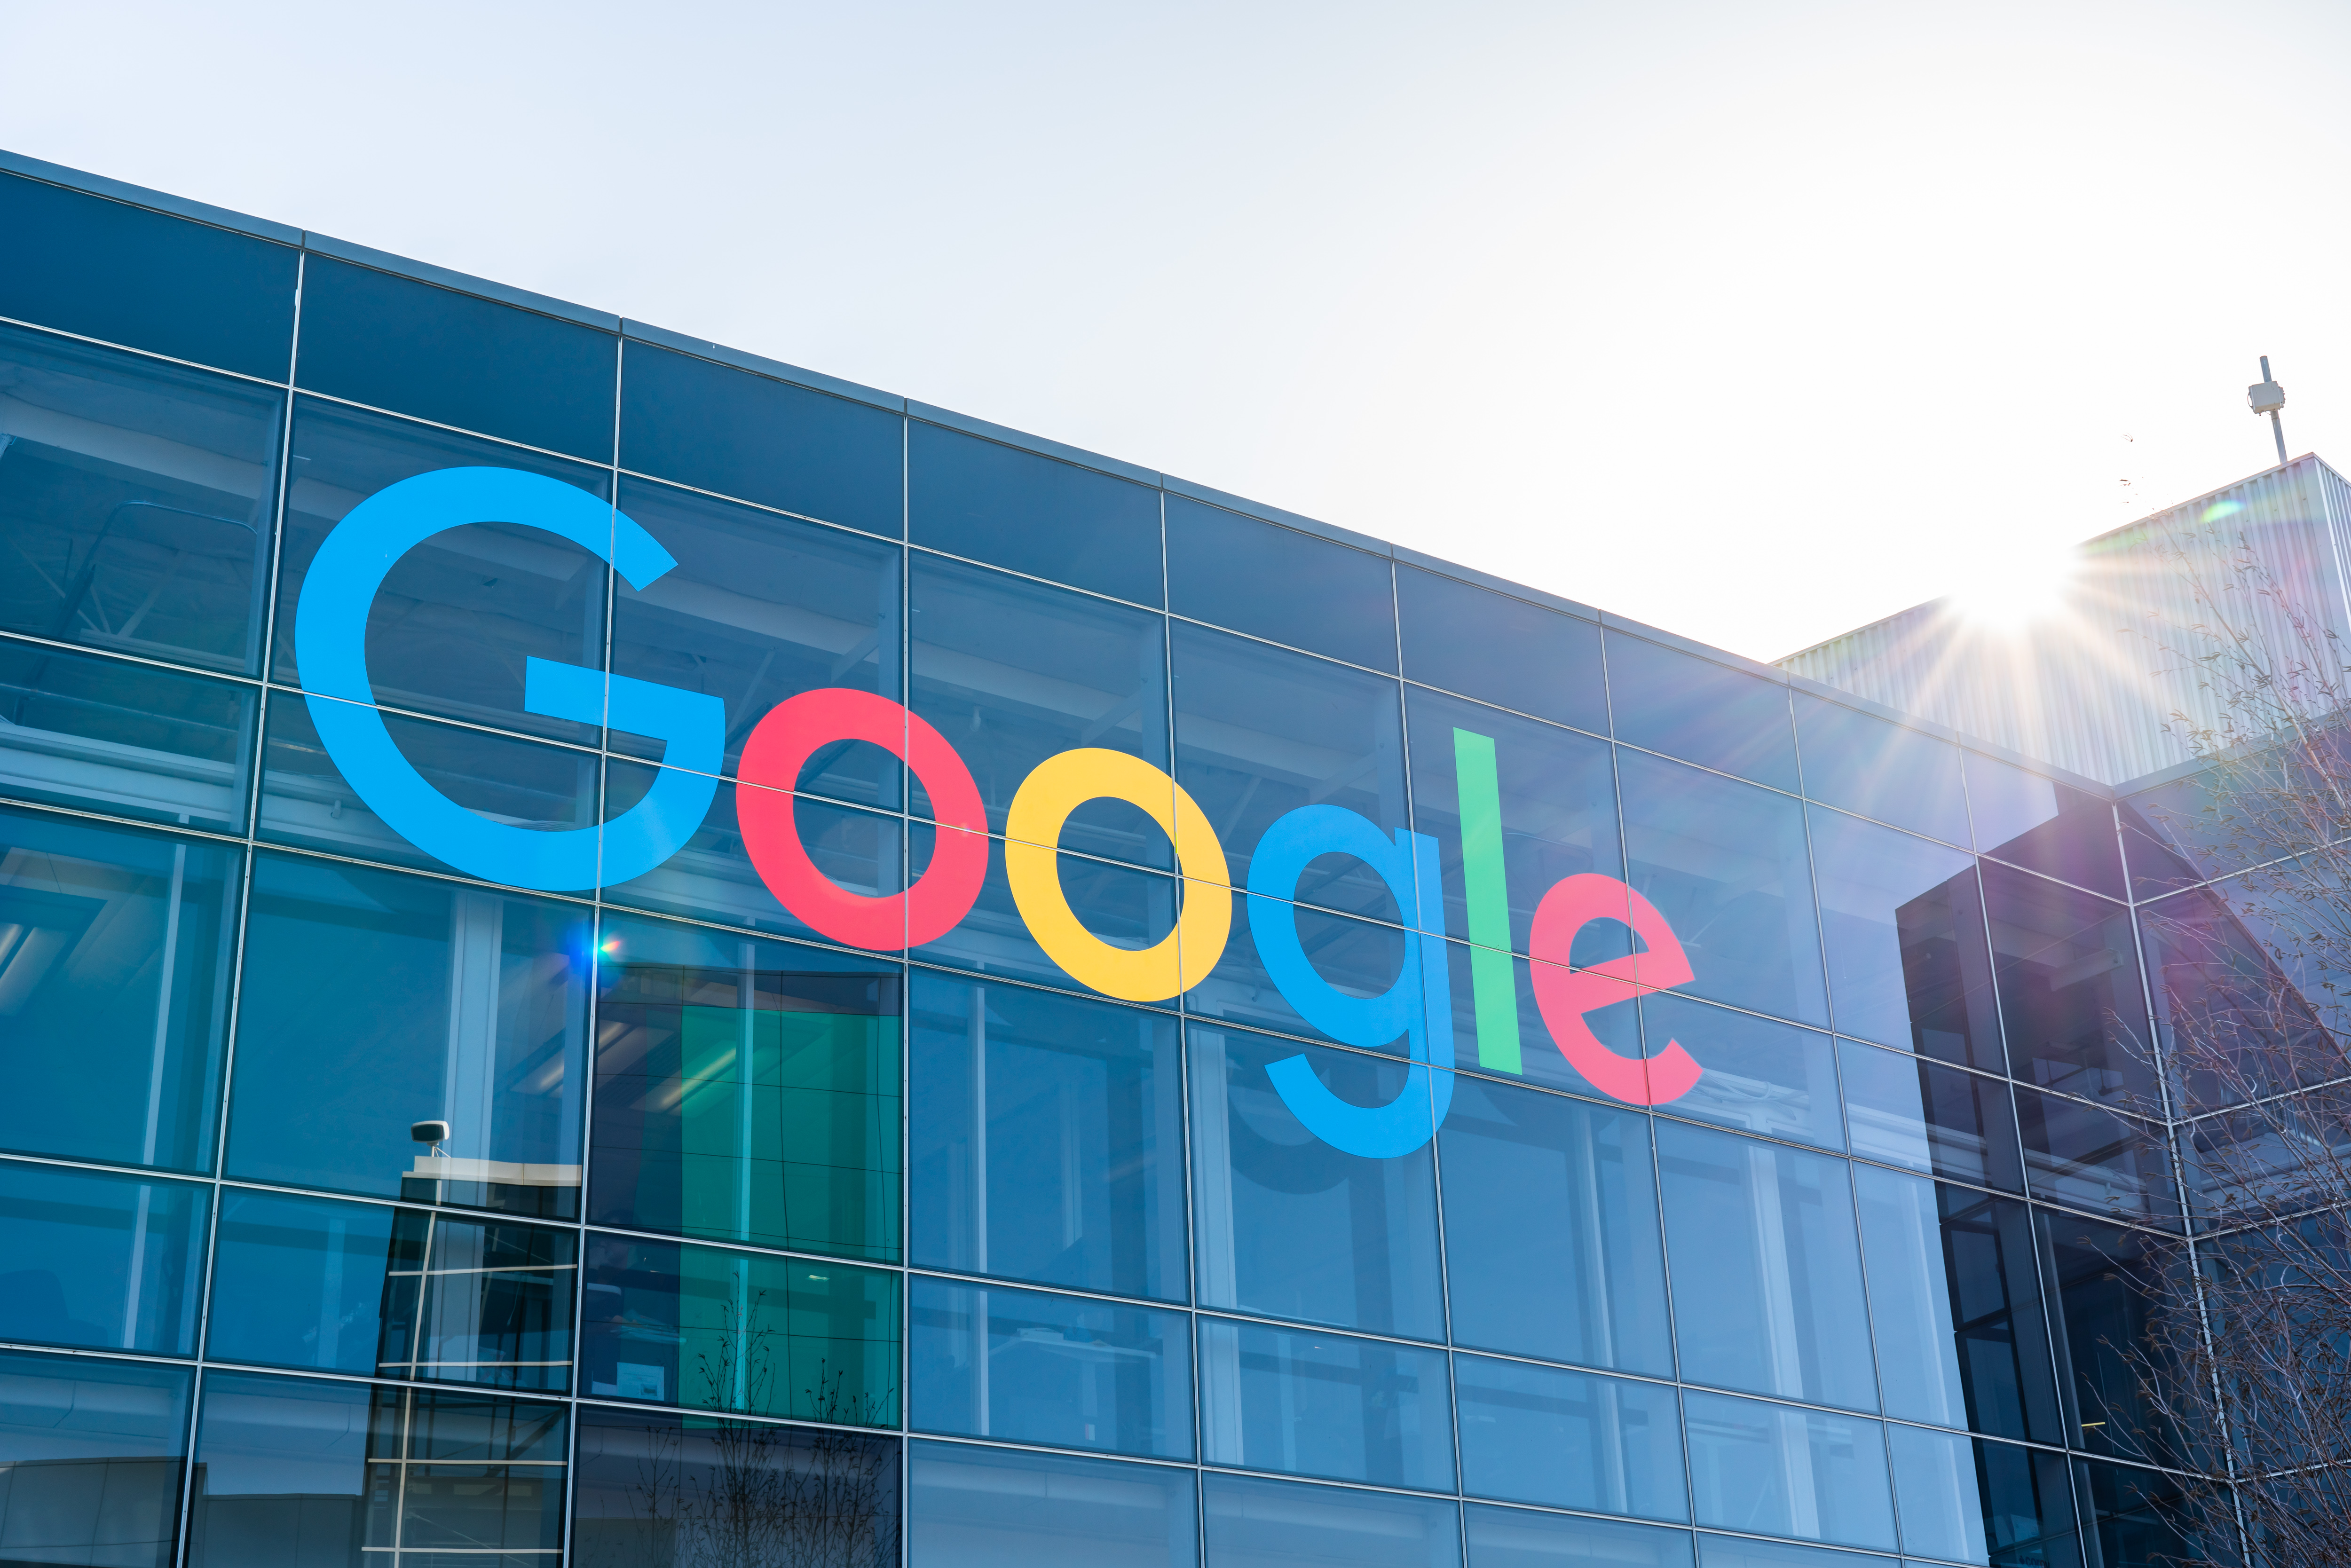 Pittsburgh Google contractors ratify deal with HCL – TechCrunch